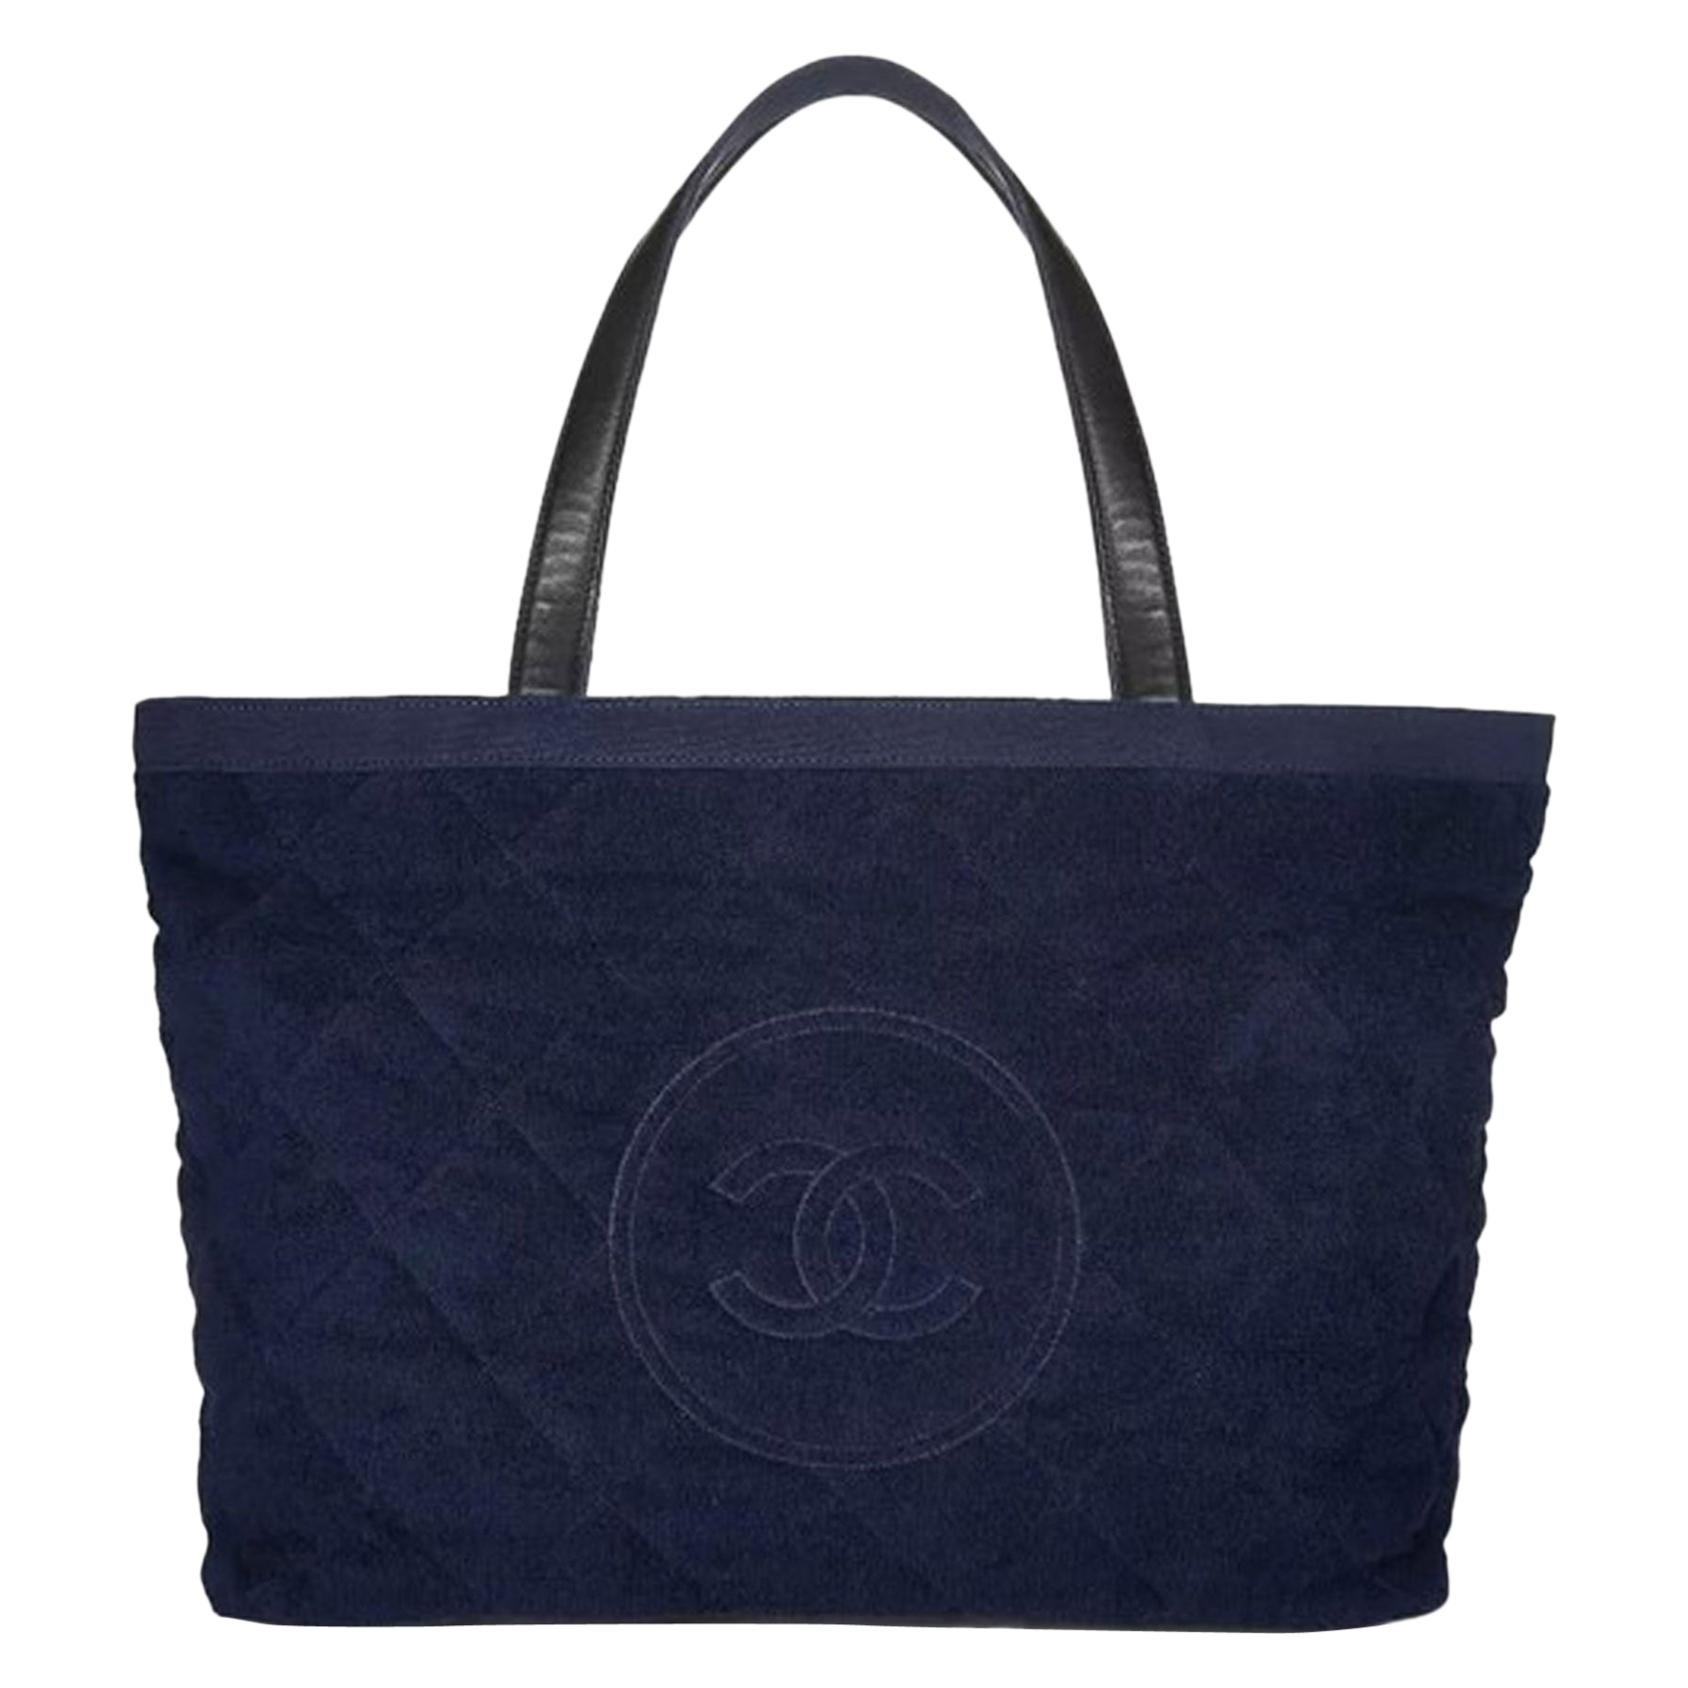 Chanel Timeless Pool Limited Edition Navy Blue Terry Tote Beach Bag